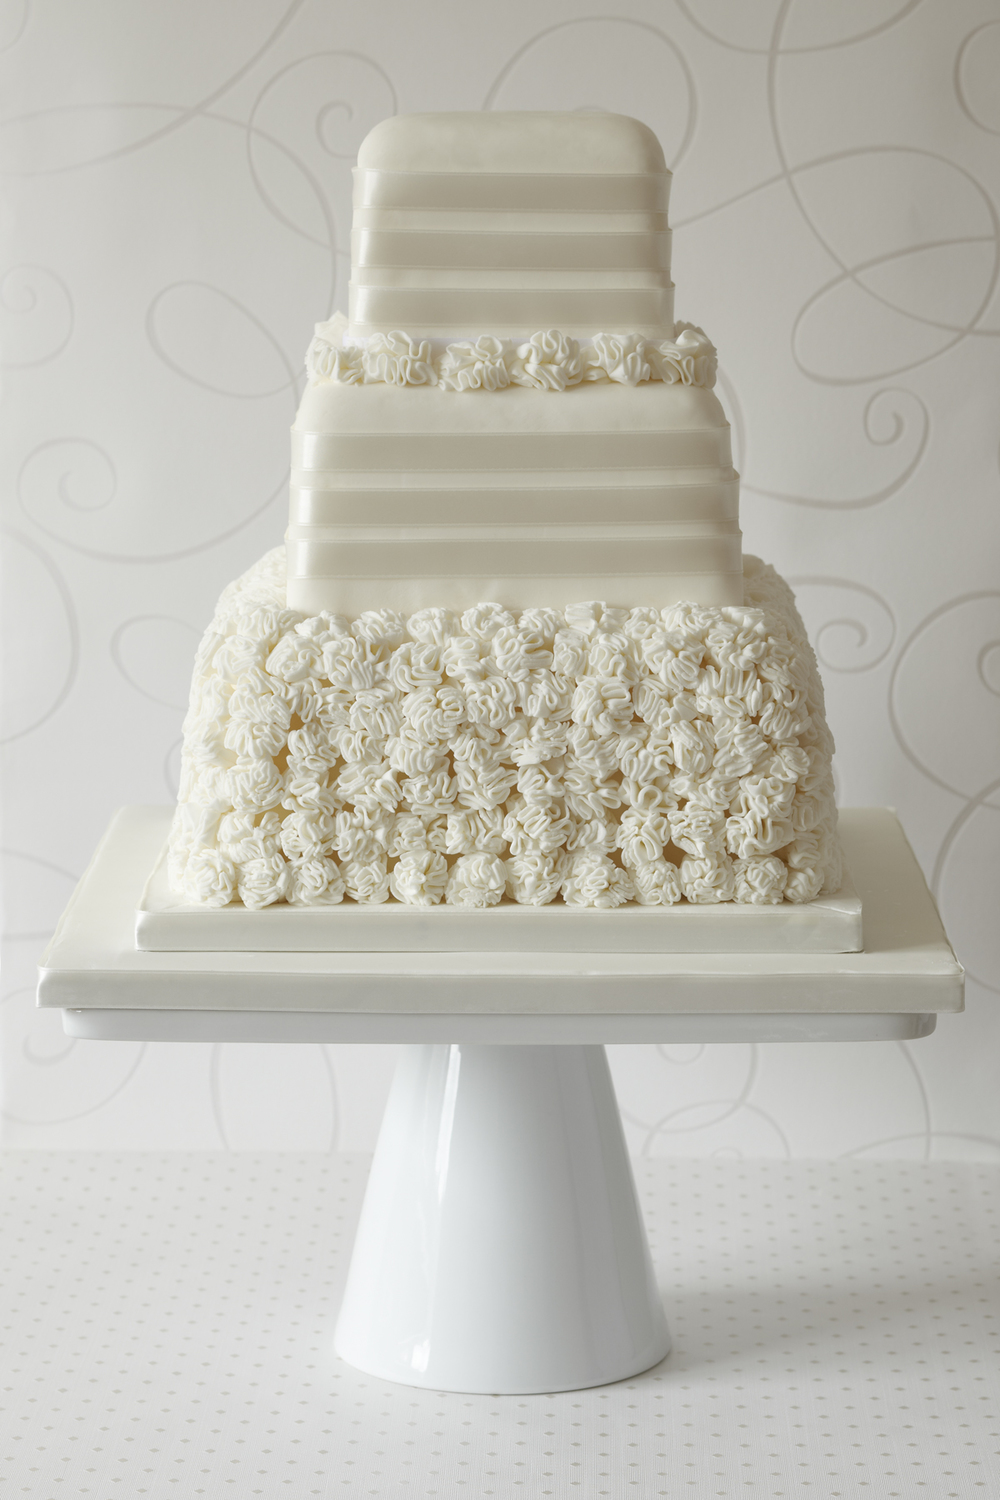 La Traviata wedding cake